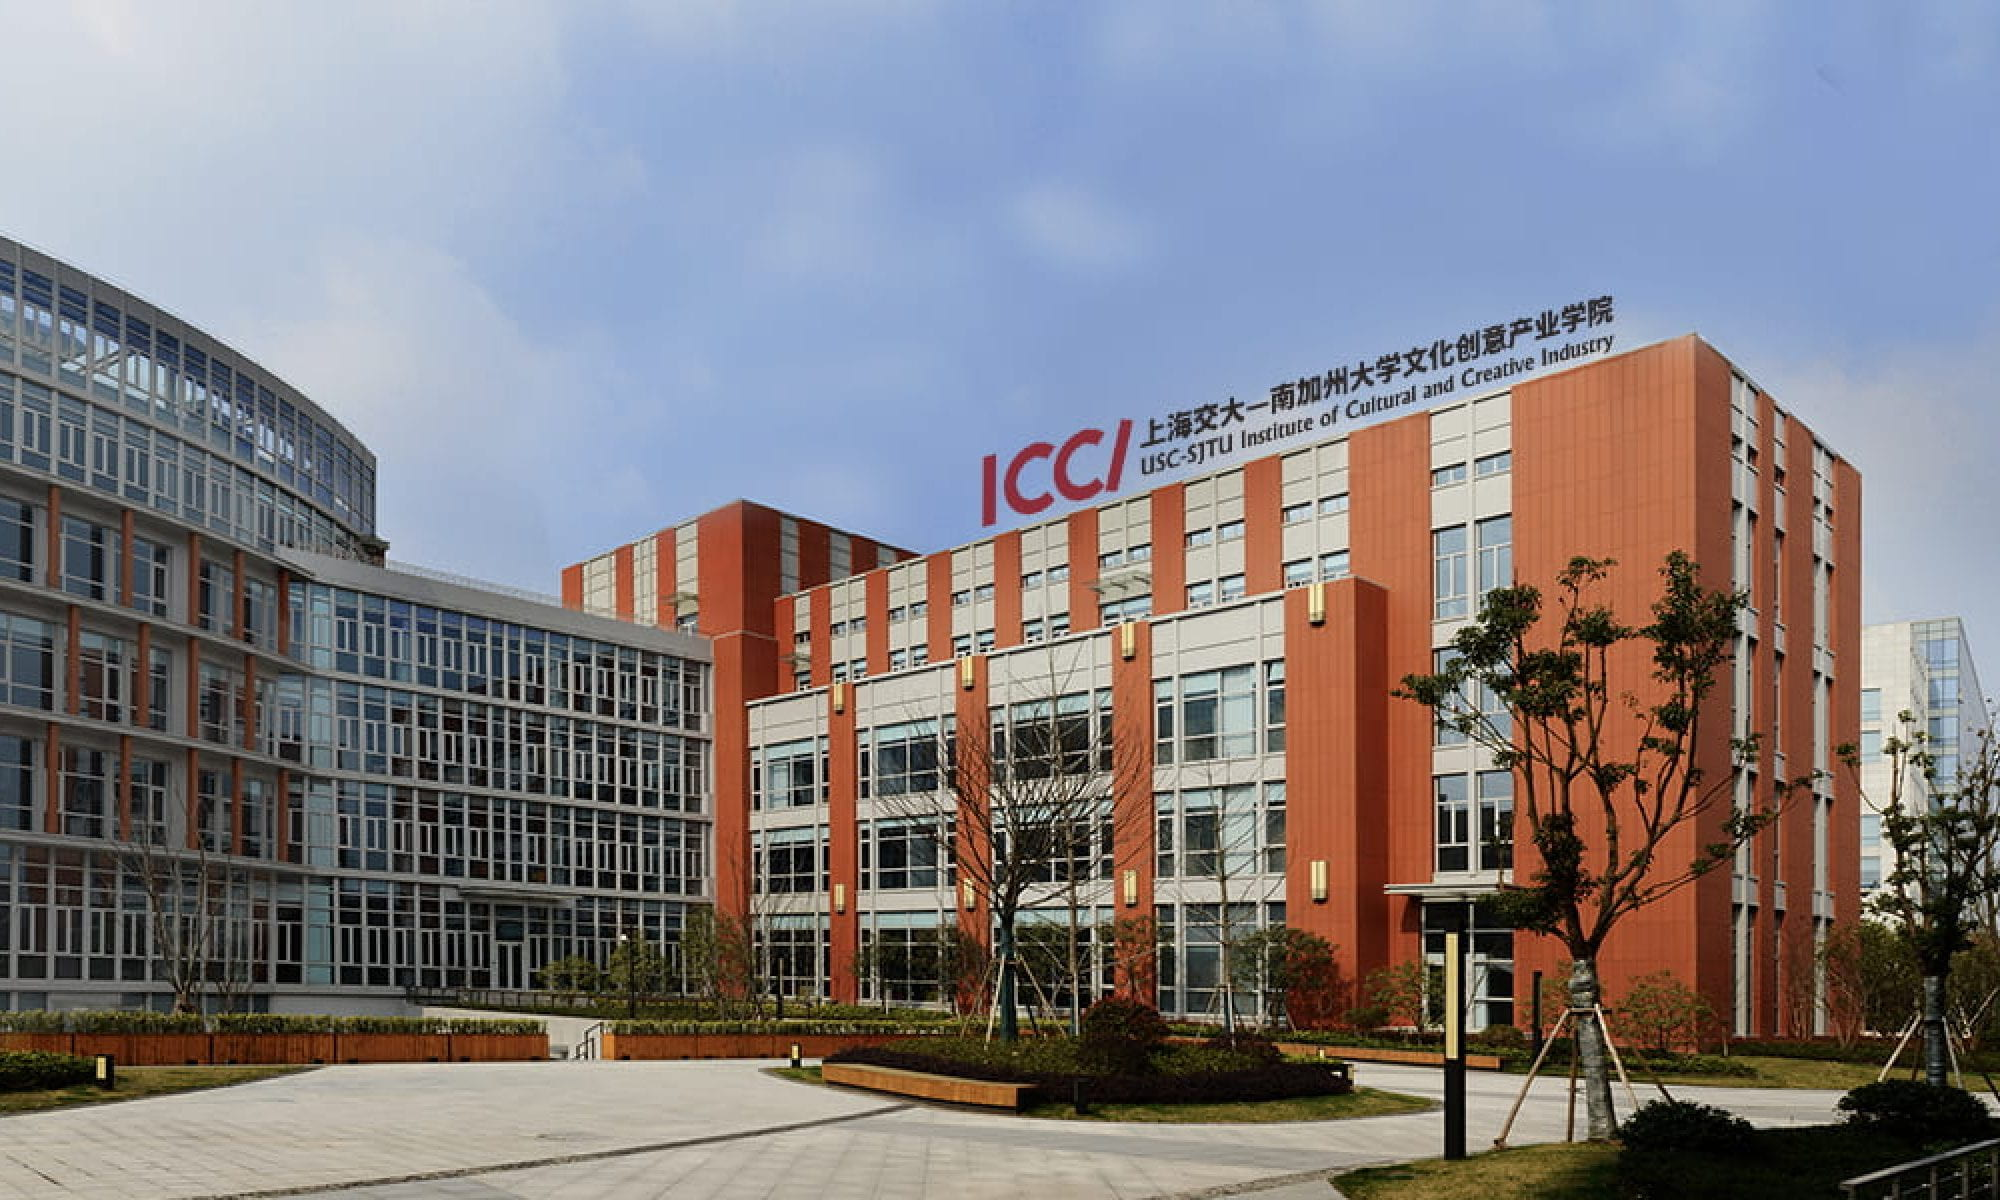 Institute of Cultural and Creative Industry (ICCI)